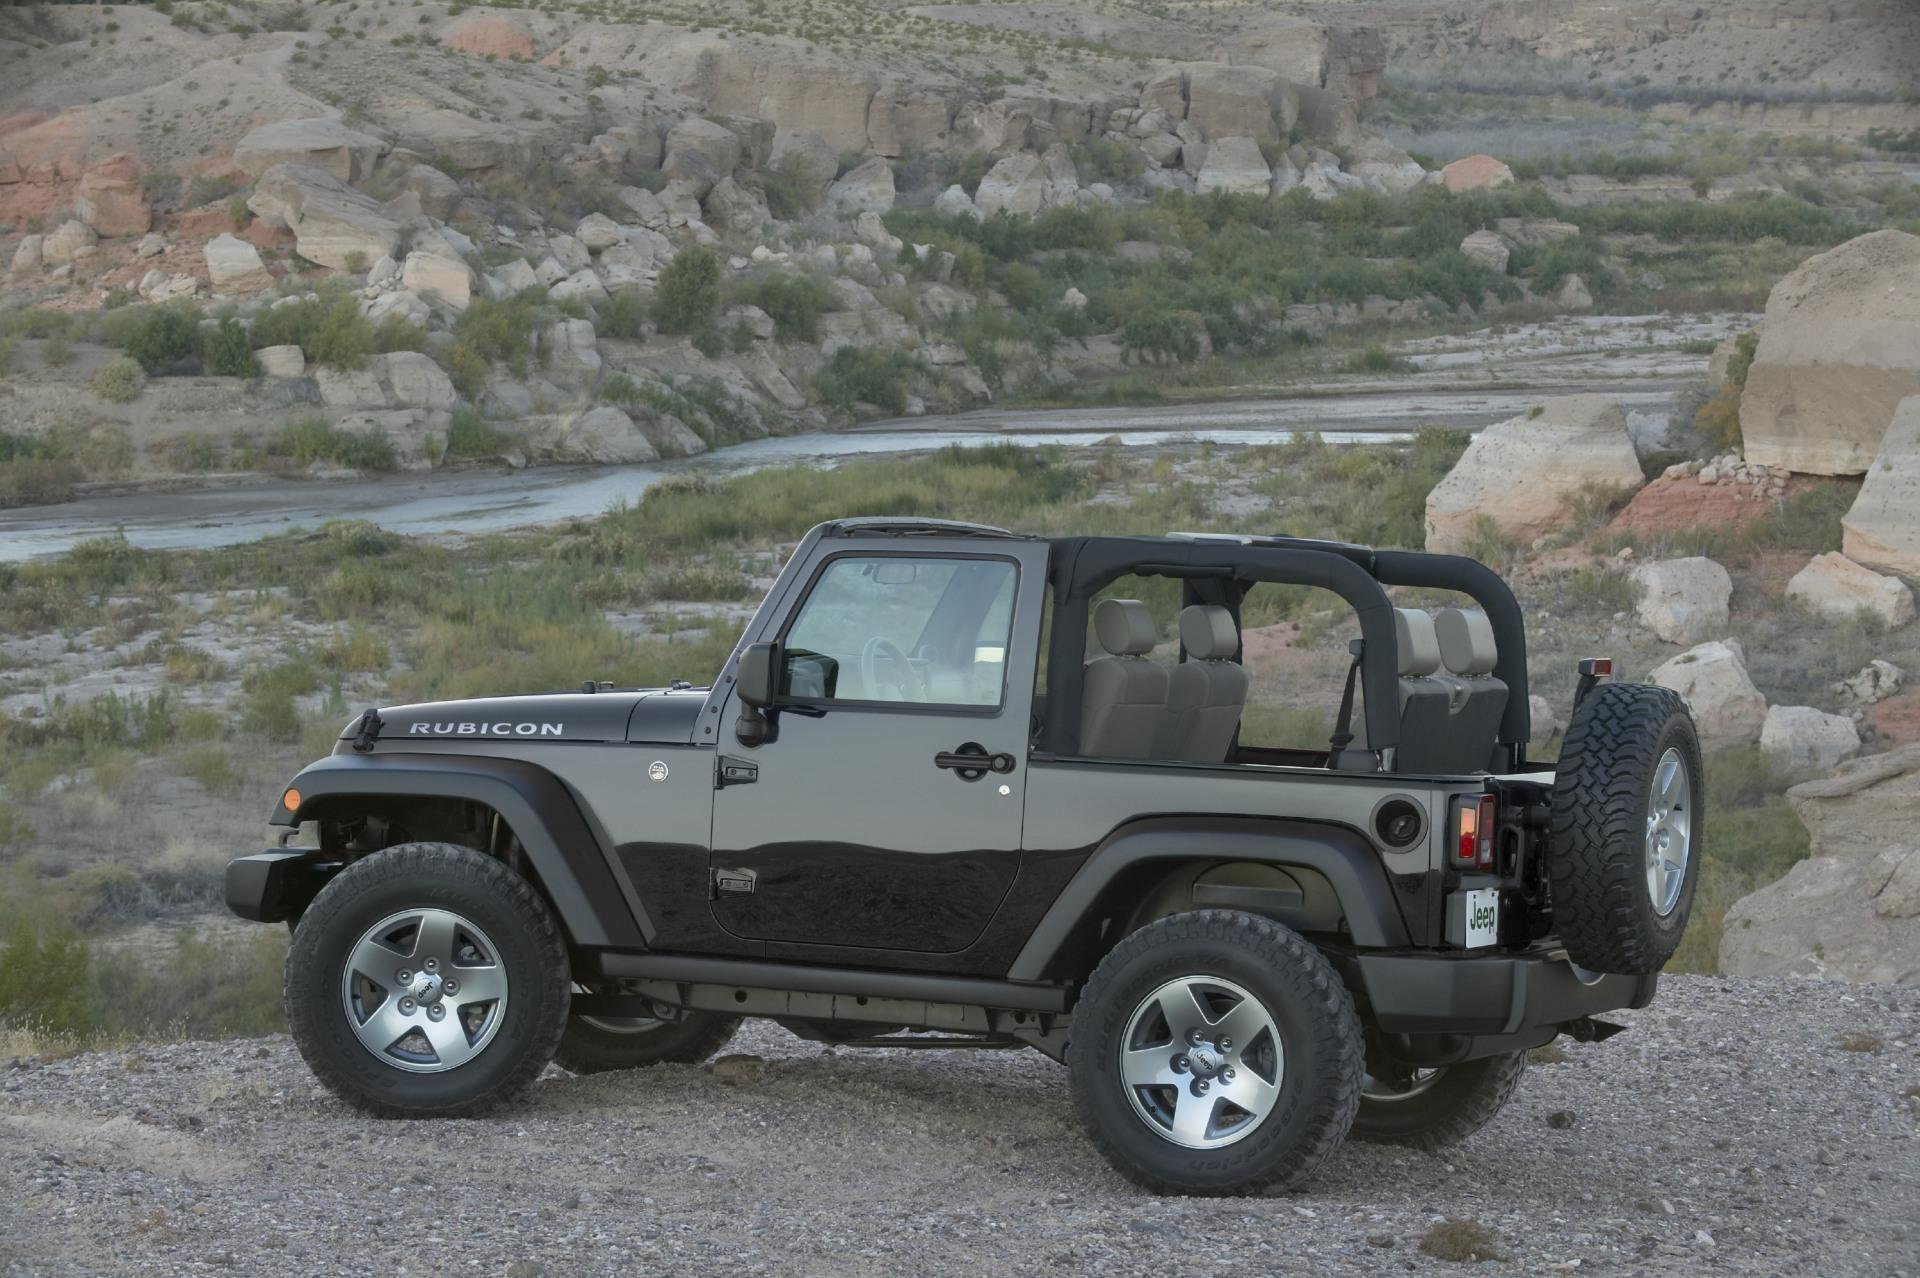 rubicon wrangler jeep unlimited review img